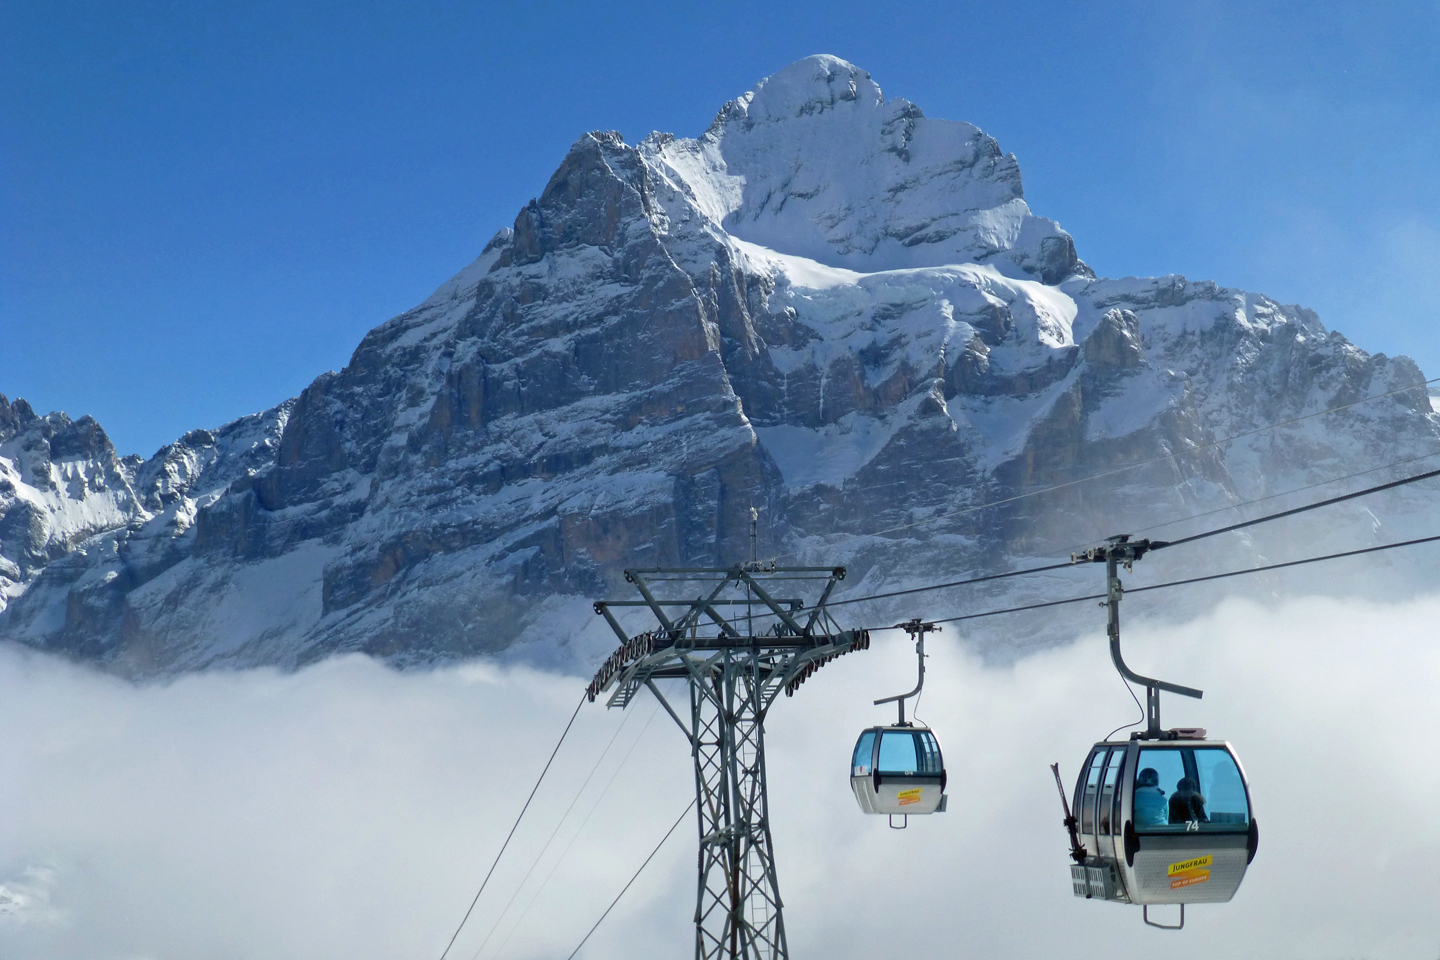 The First gondola and the Wetterhorn